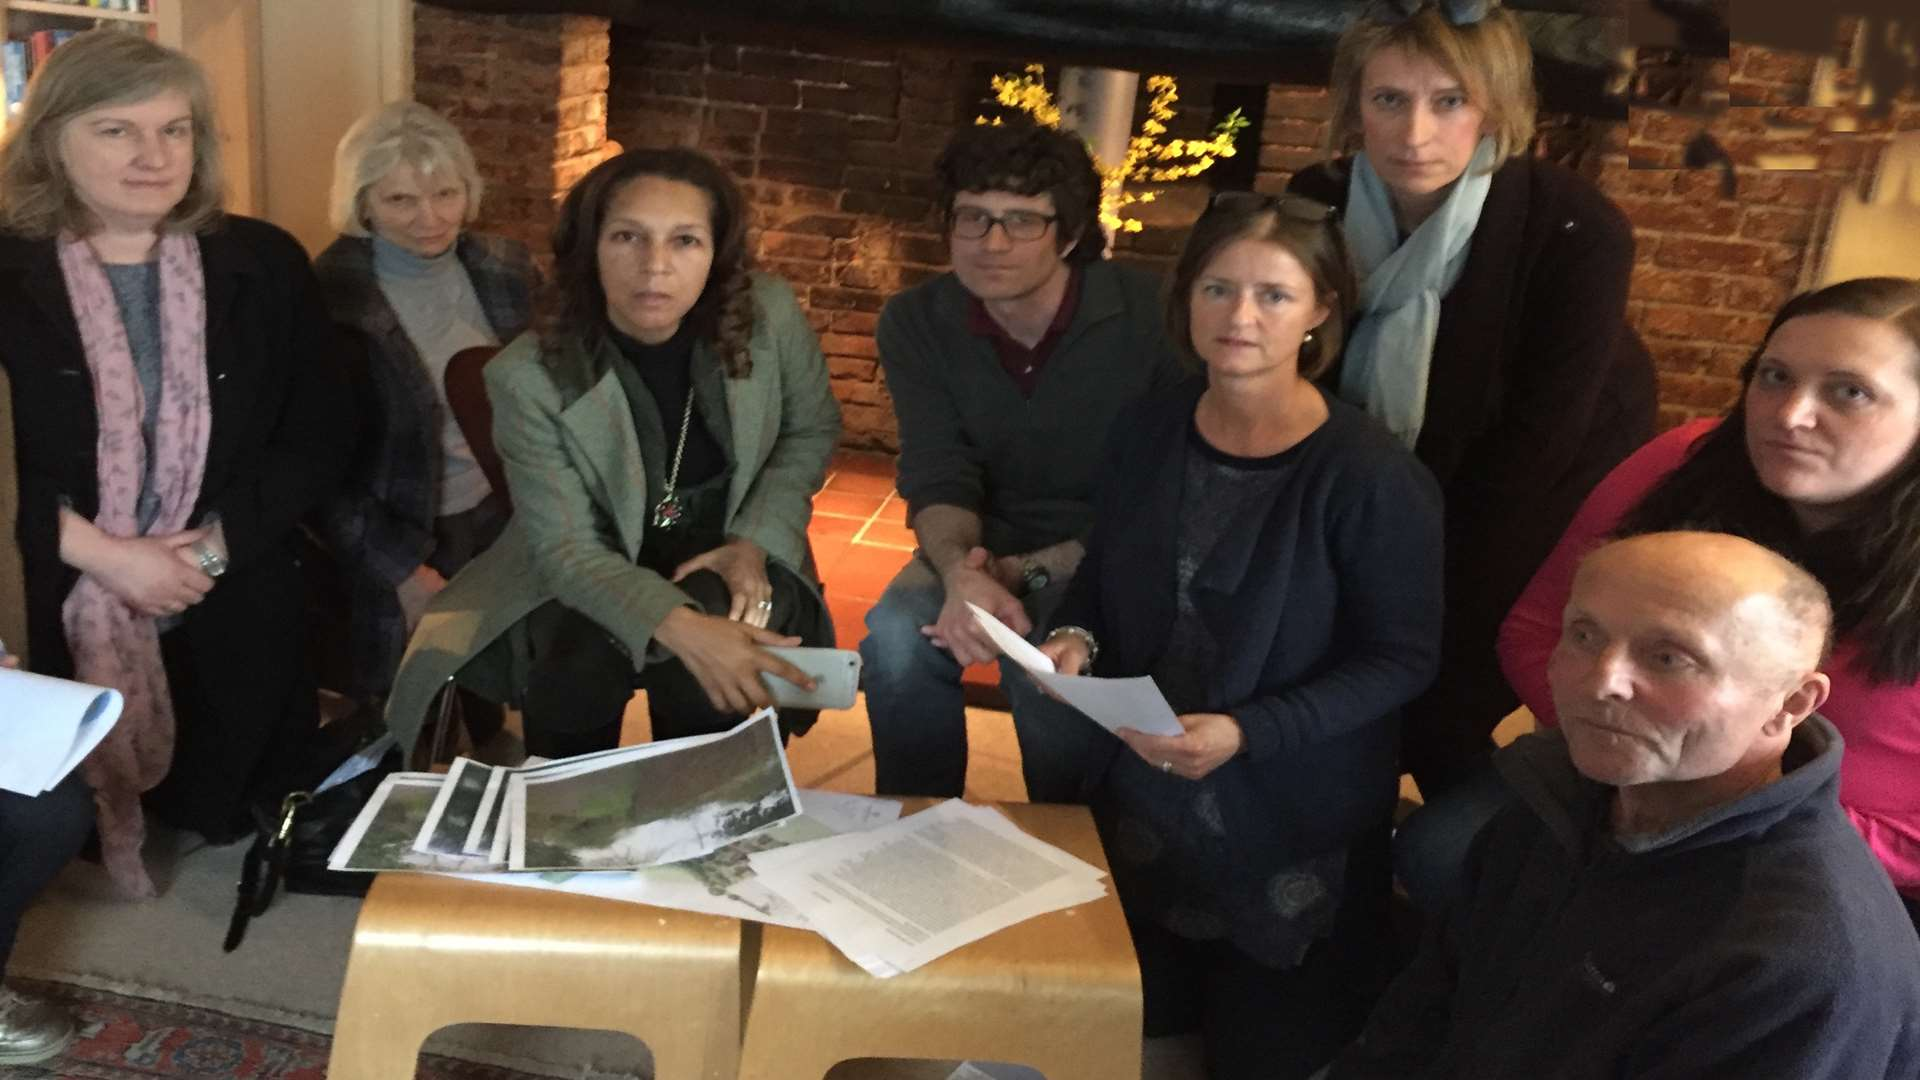 Members of The Yalding Residents for Sensible Development Group examine the planning application with Helen Grant MP. From left, Lisa Brooks, Jenny Scott, Helen Grant, John Ackerman, Bethan Godden, Meg West, Susie Welland and Stephen Day